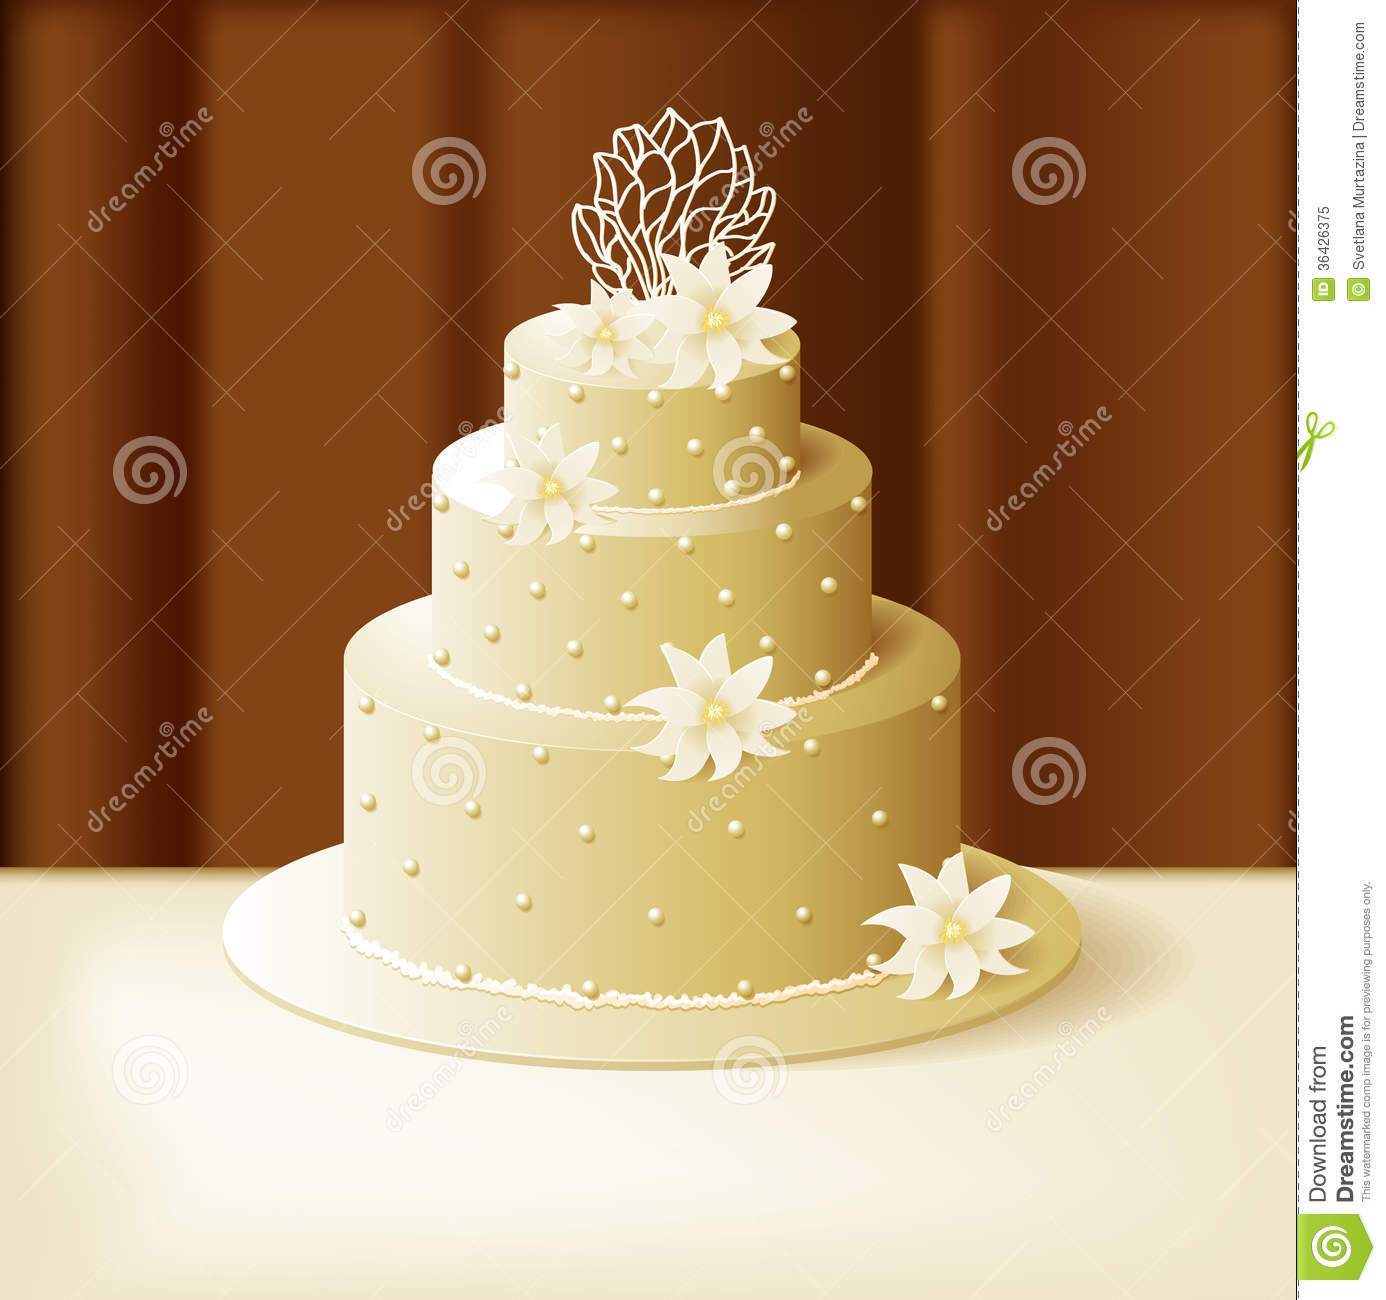 Wedding Cake With Lilies And Sweet Pearls Stock Vector ...